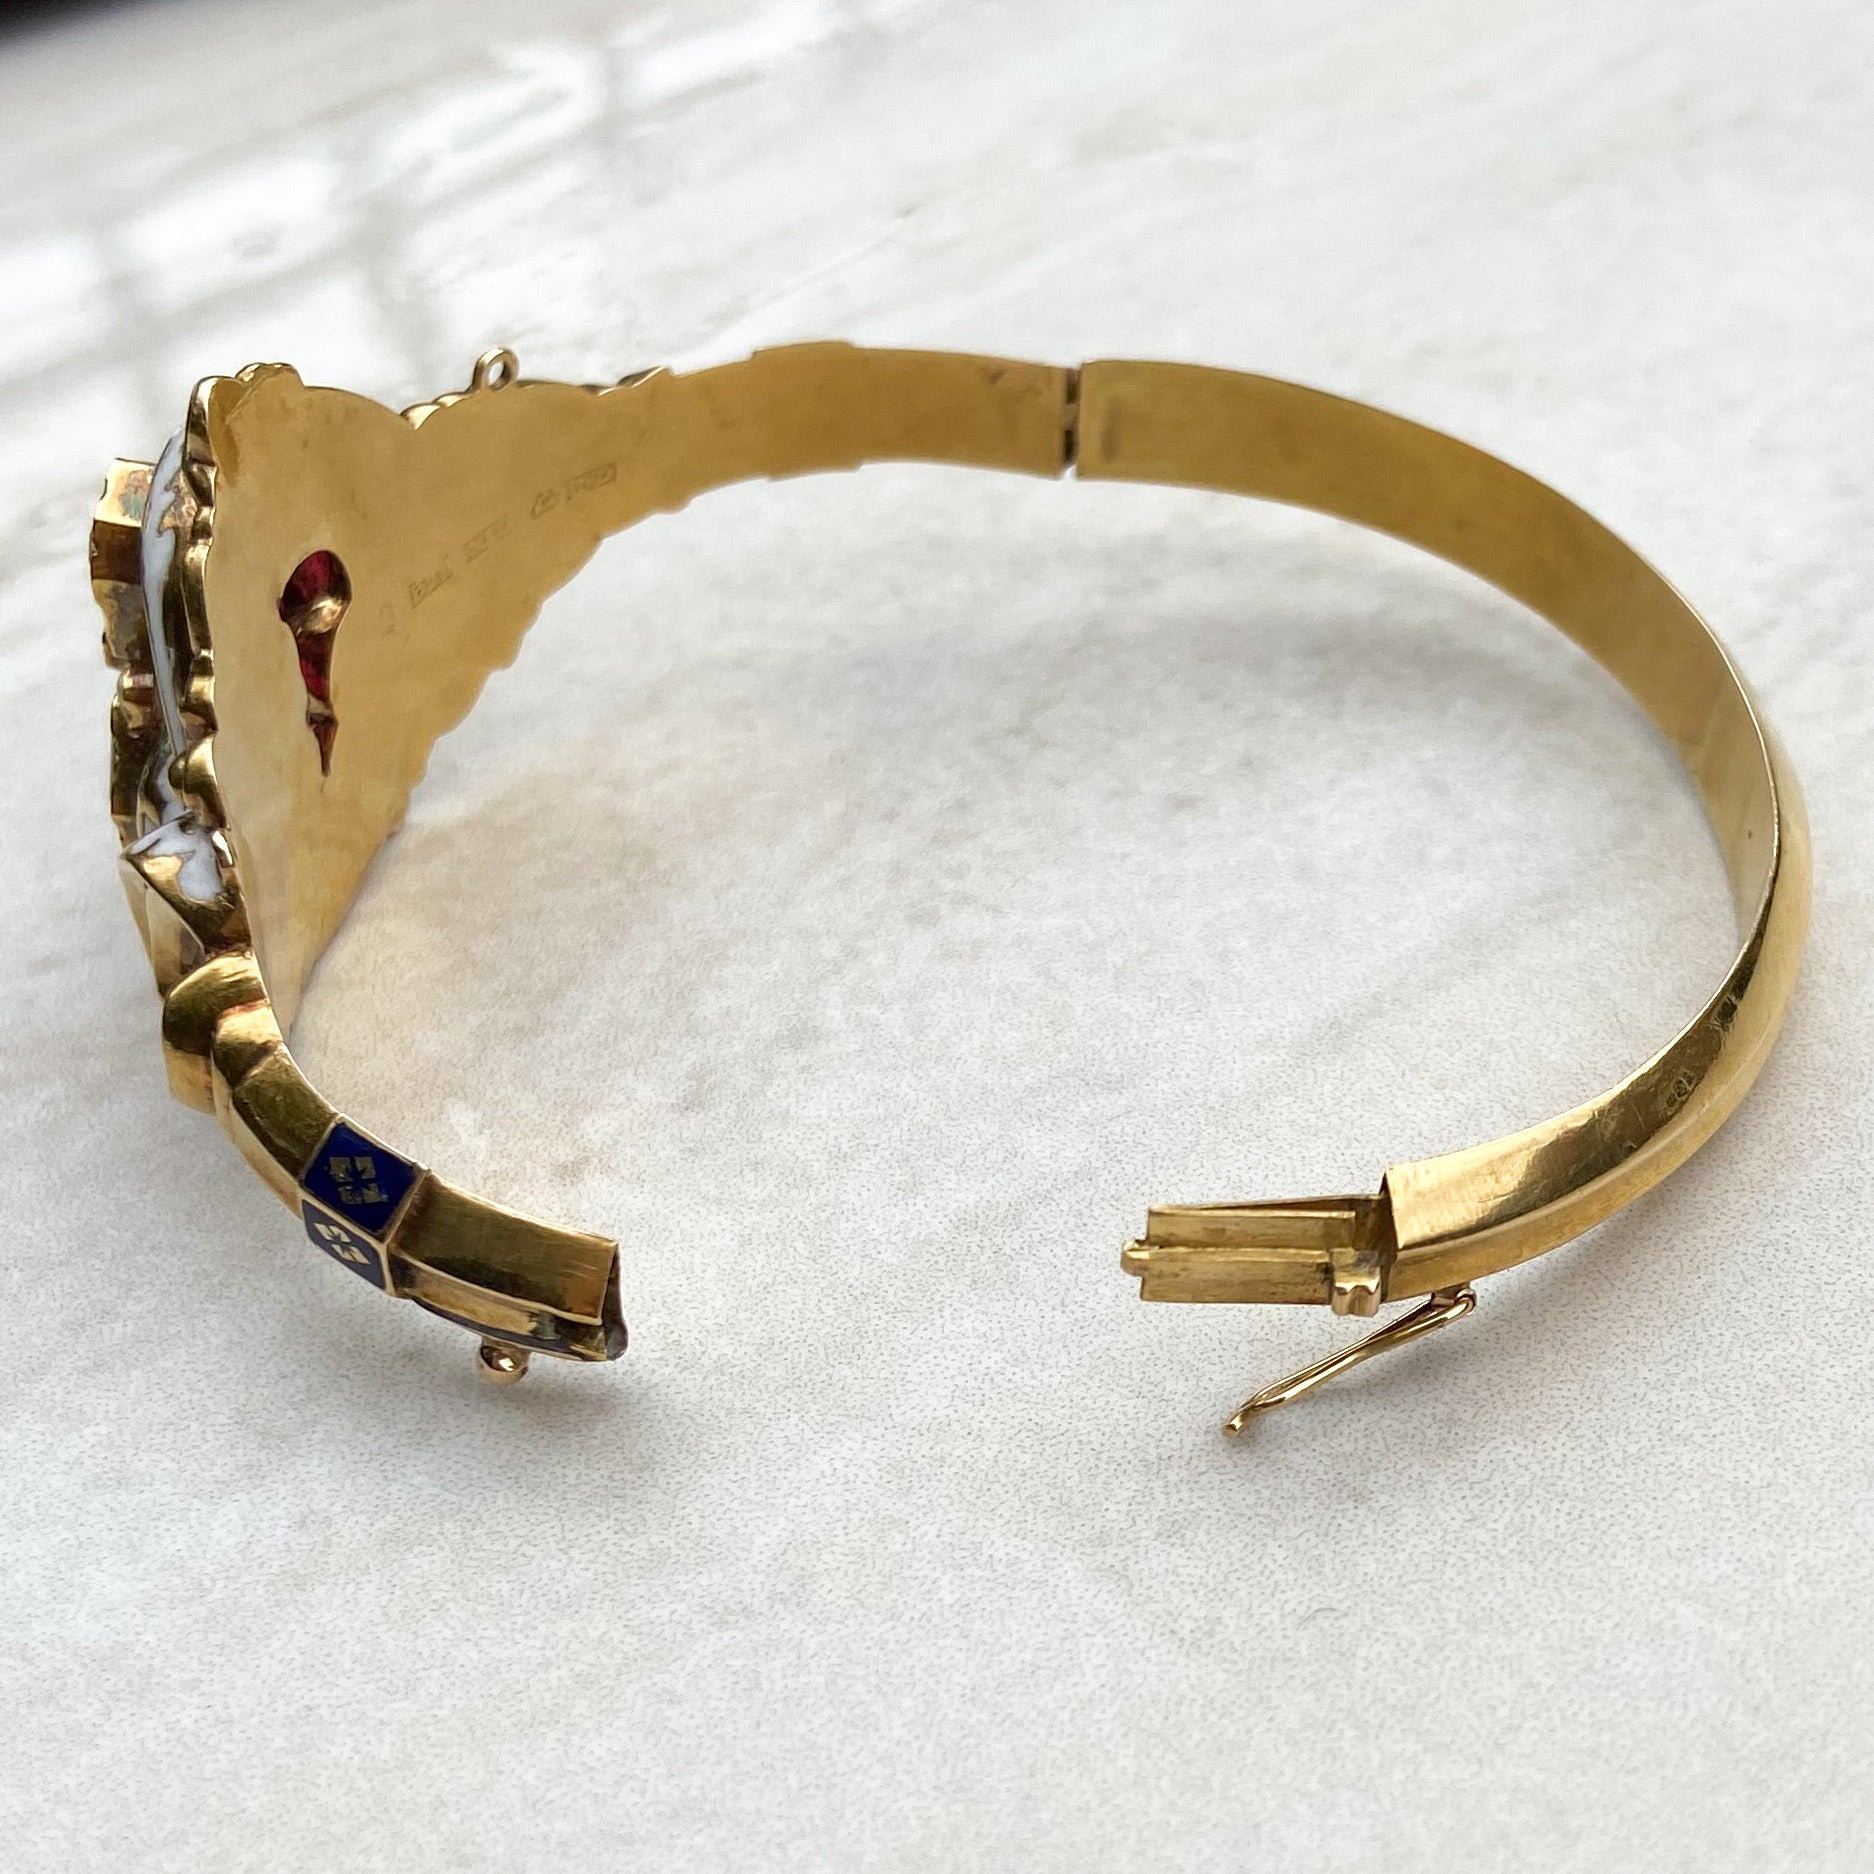 Swedish Gold, Paste and Enamel Baroque Style Bangle c.1850